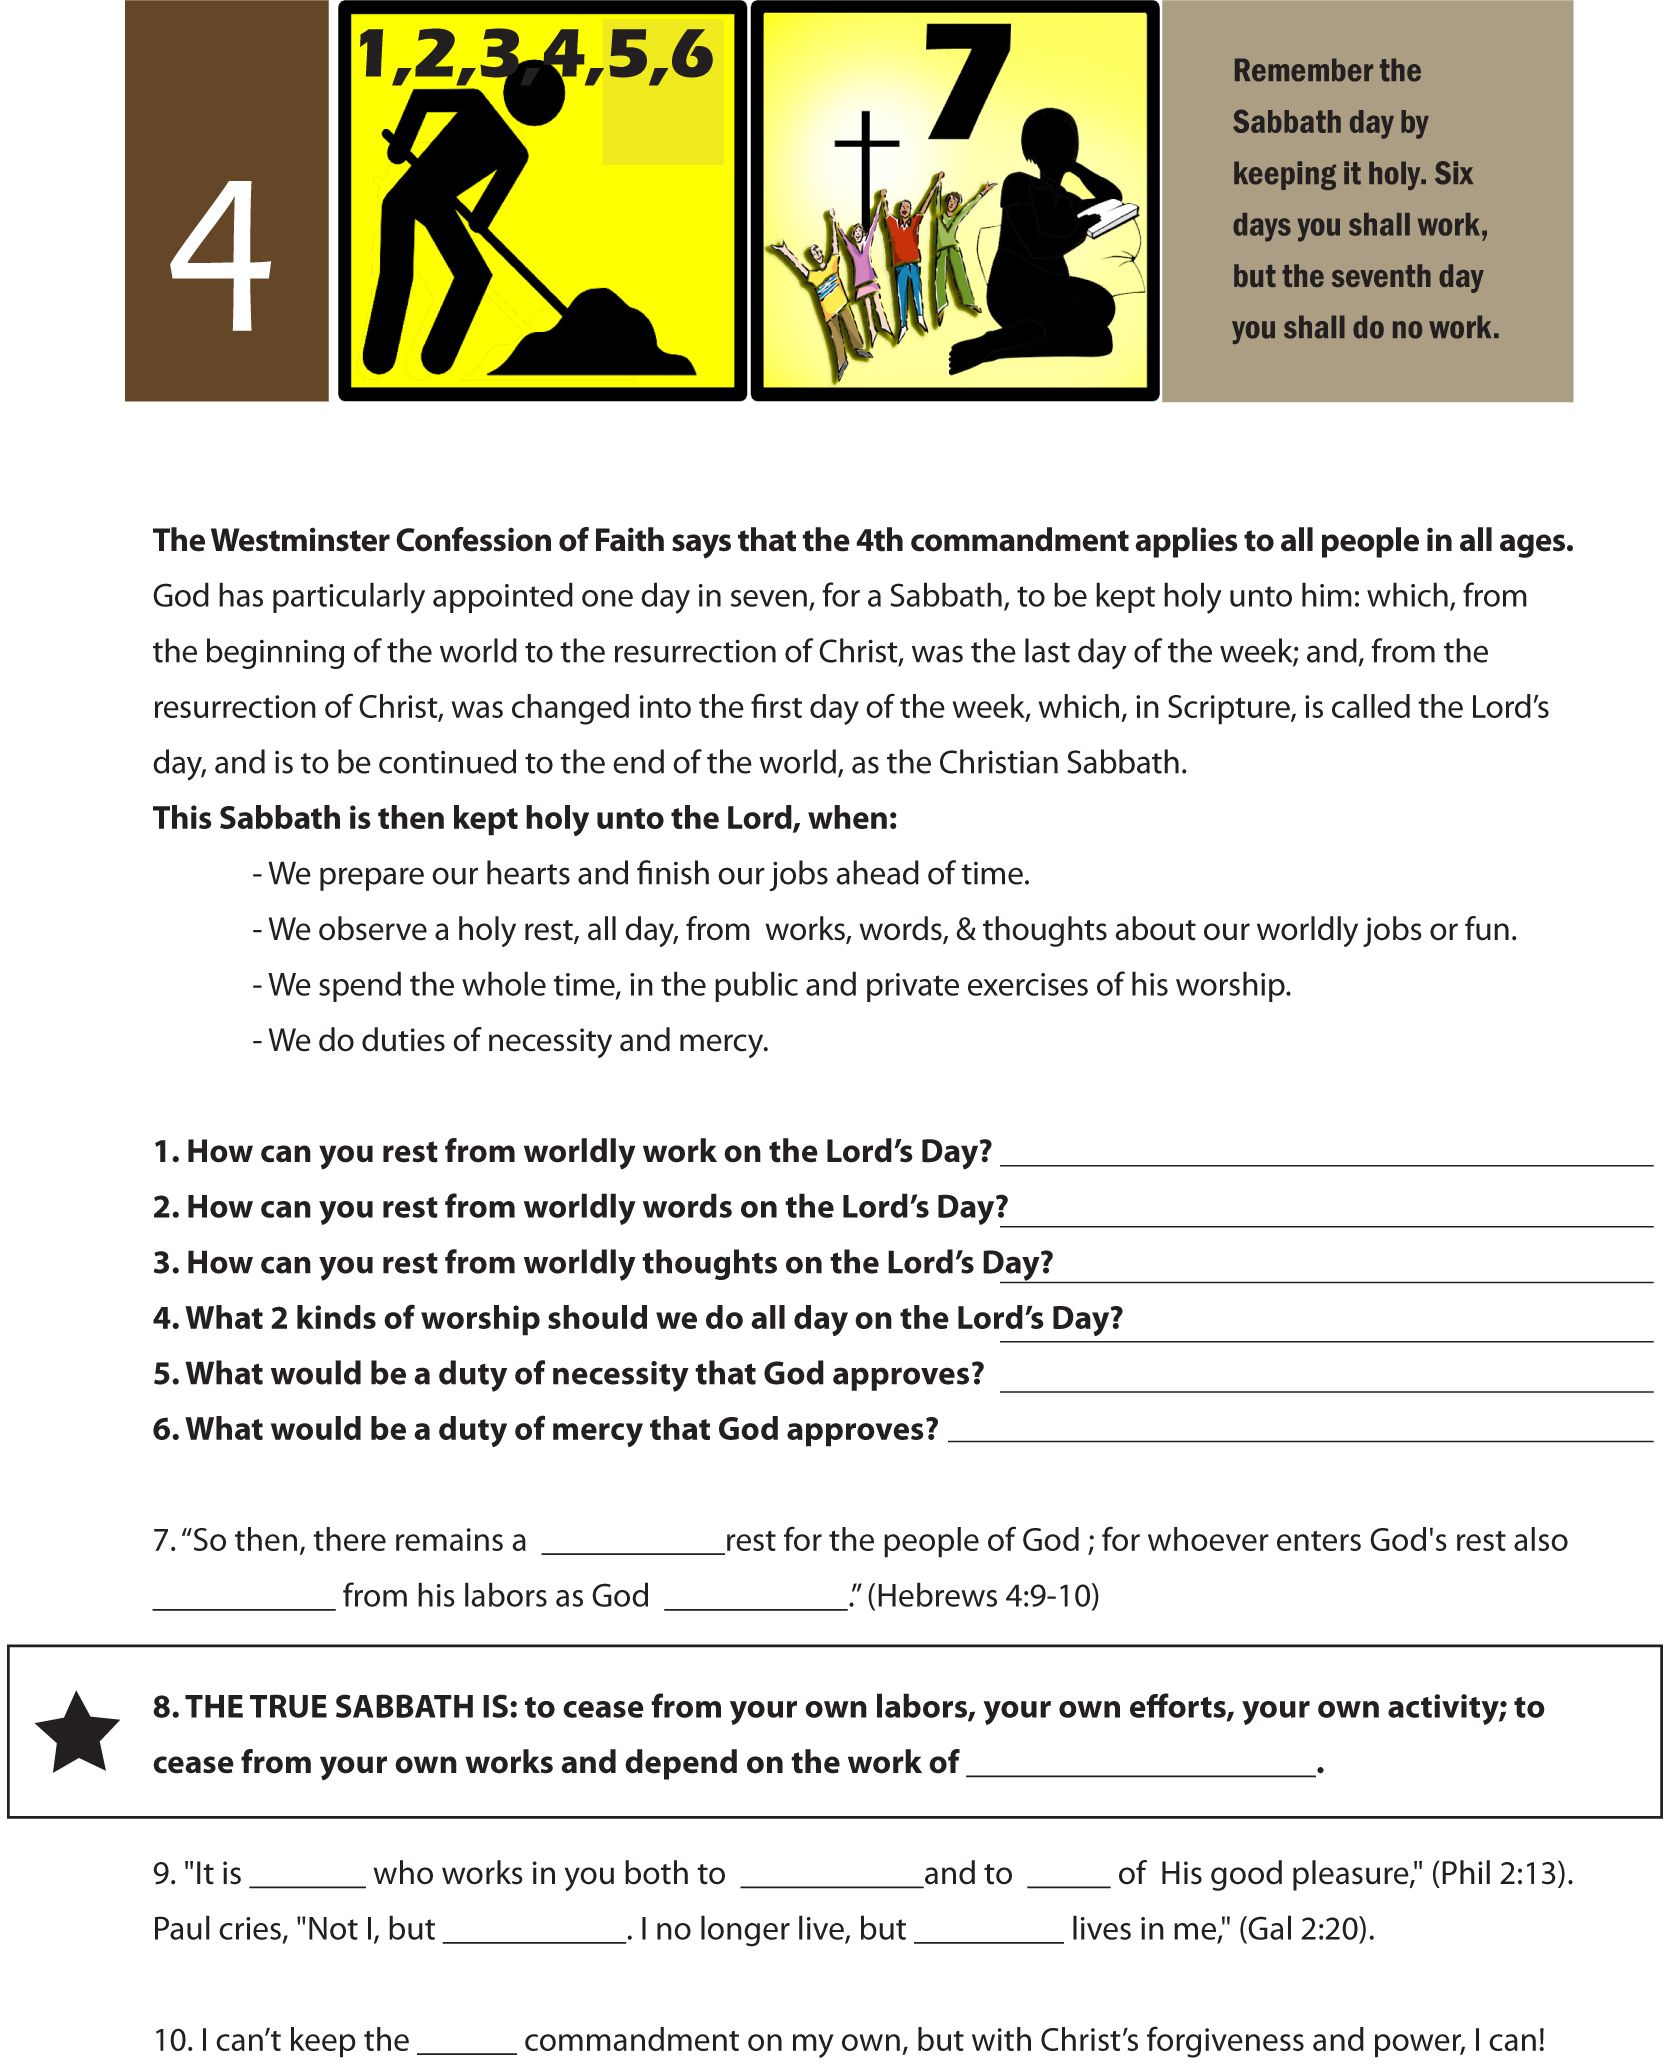 Worksheet To Teach The Fourth Of The 10 Commandments Work For 6 Days But Rest On The 7th Day